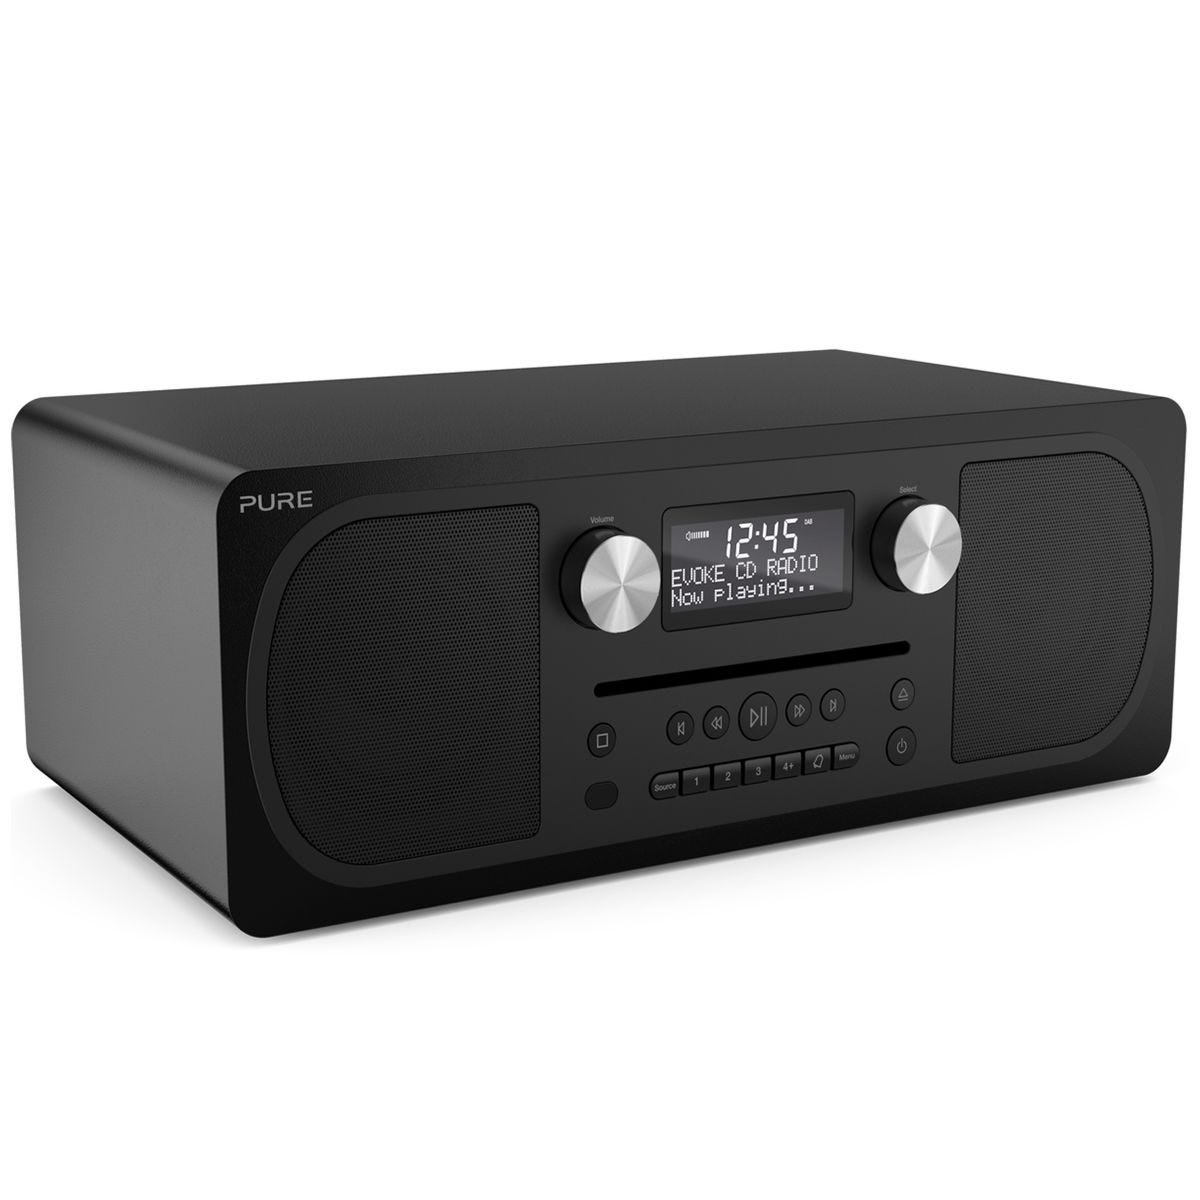 Pure Evoke C-D6 Stereo All-in-one Music System with CD, DAB/DAB+, FM, Bluetooth - Black